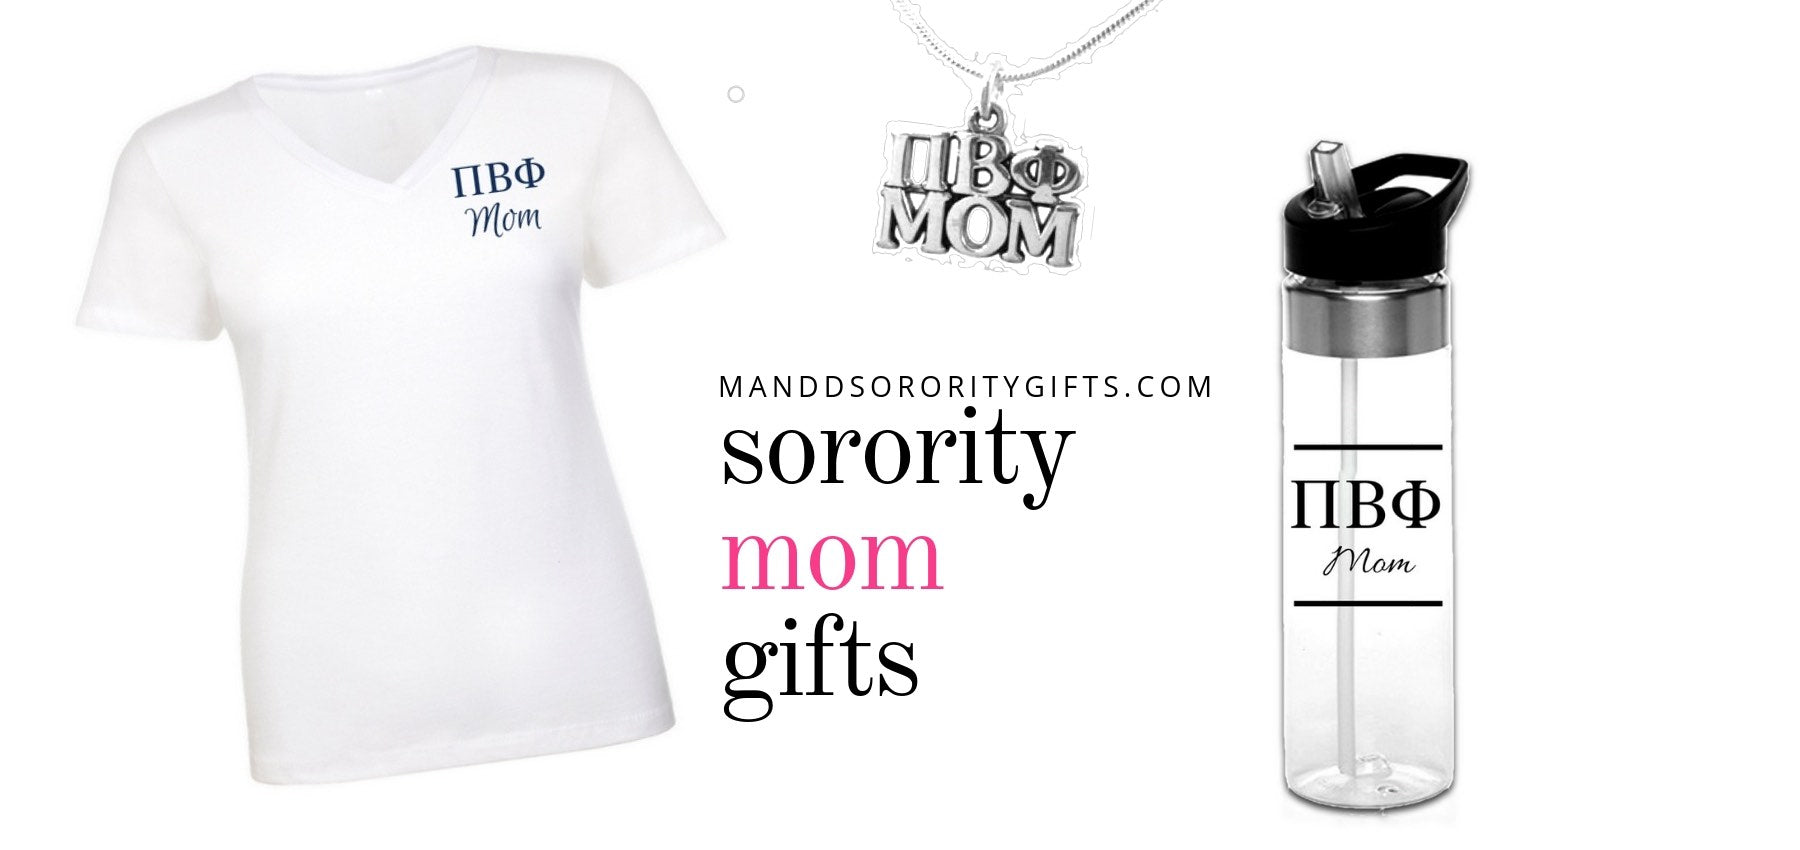 Pi Beta Phi Mom Gifts Promo